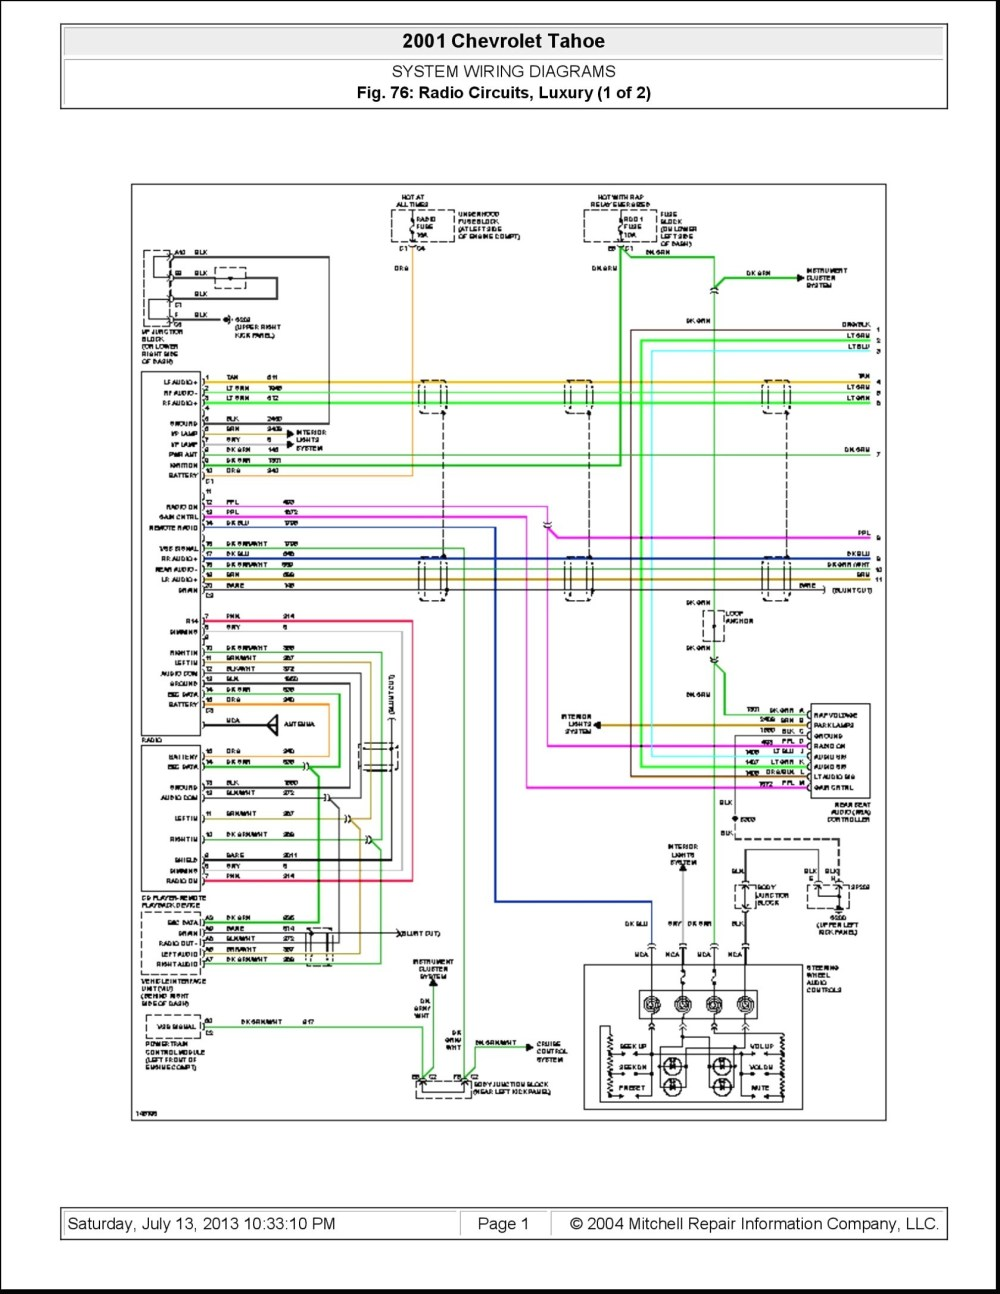 medium resolution of 2013 chevy wiring harness diagram wiring diagram load 2007 chevy silverado radio wiring harness diagram